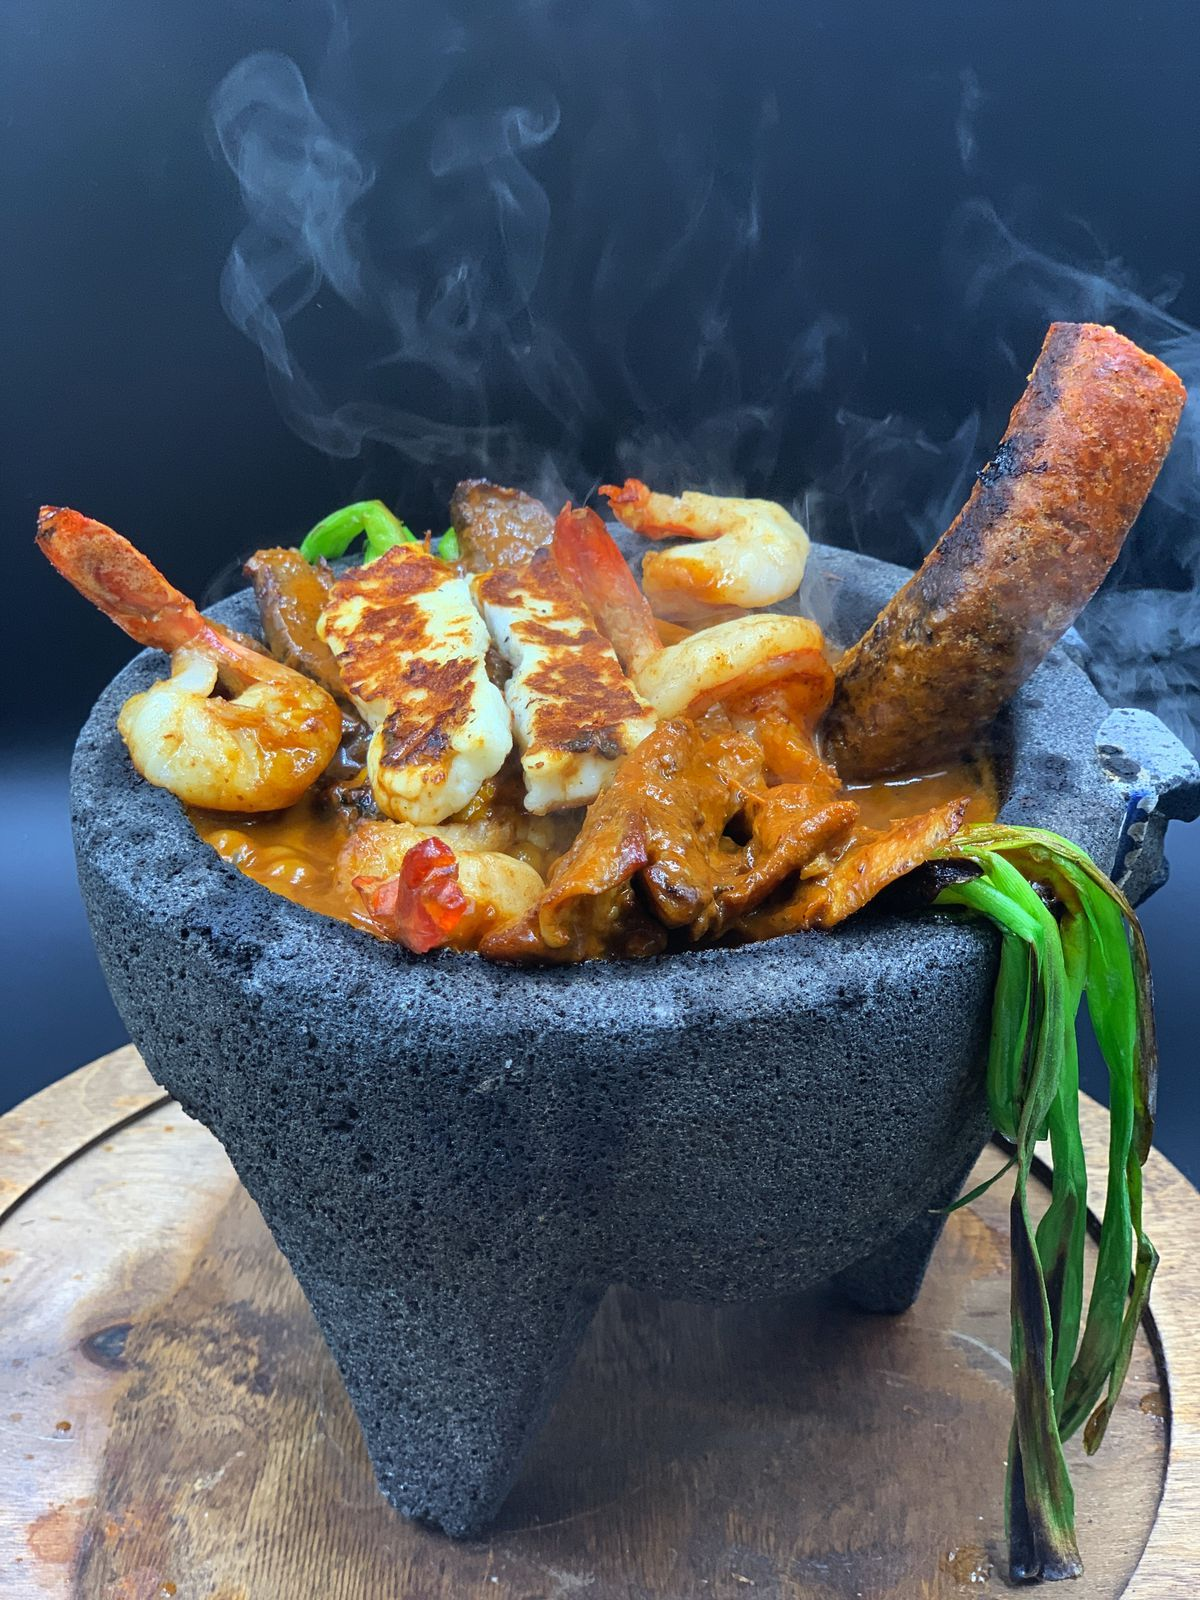 Shrimp, sausage, a browned cheese, and more ingredients sit in a stone molcajete on a wooden tray, with steam coming out from the top of the food